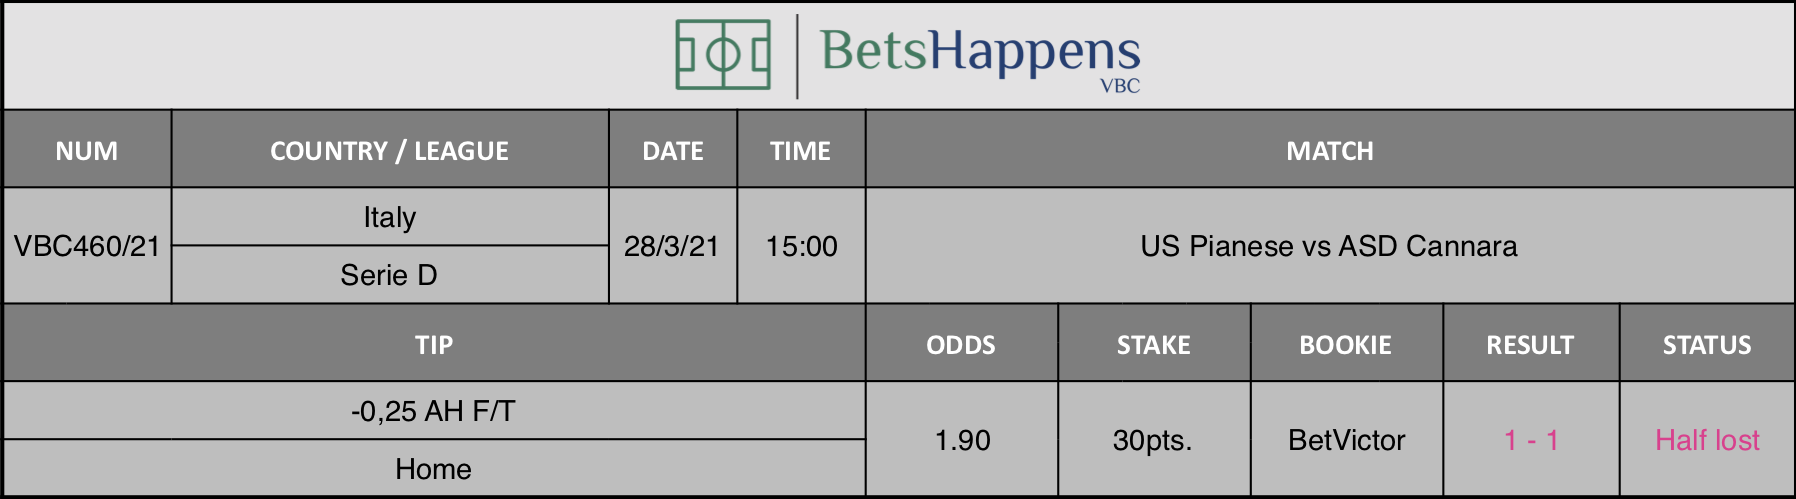 Results of our tip for the US Pianese vs ASD Cannara match where -0,25 AH F/T Home is recommended.